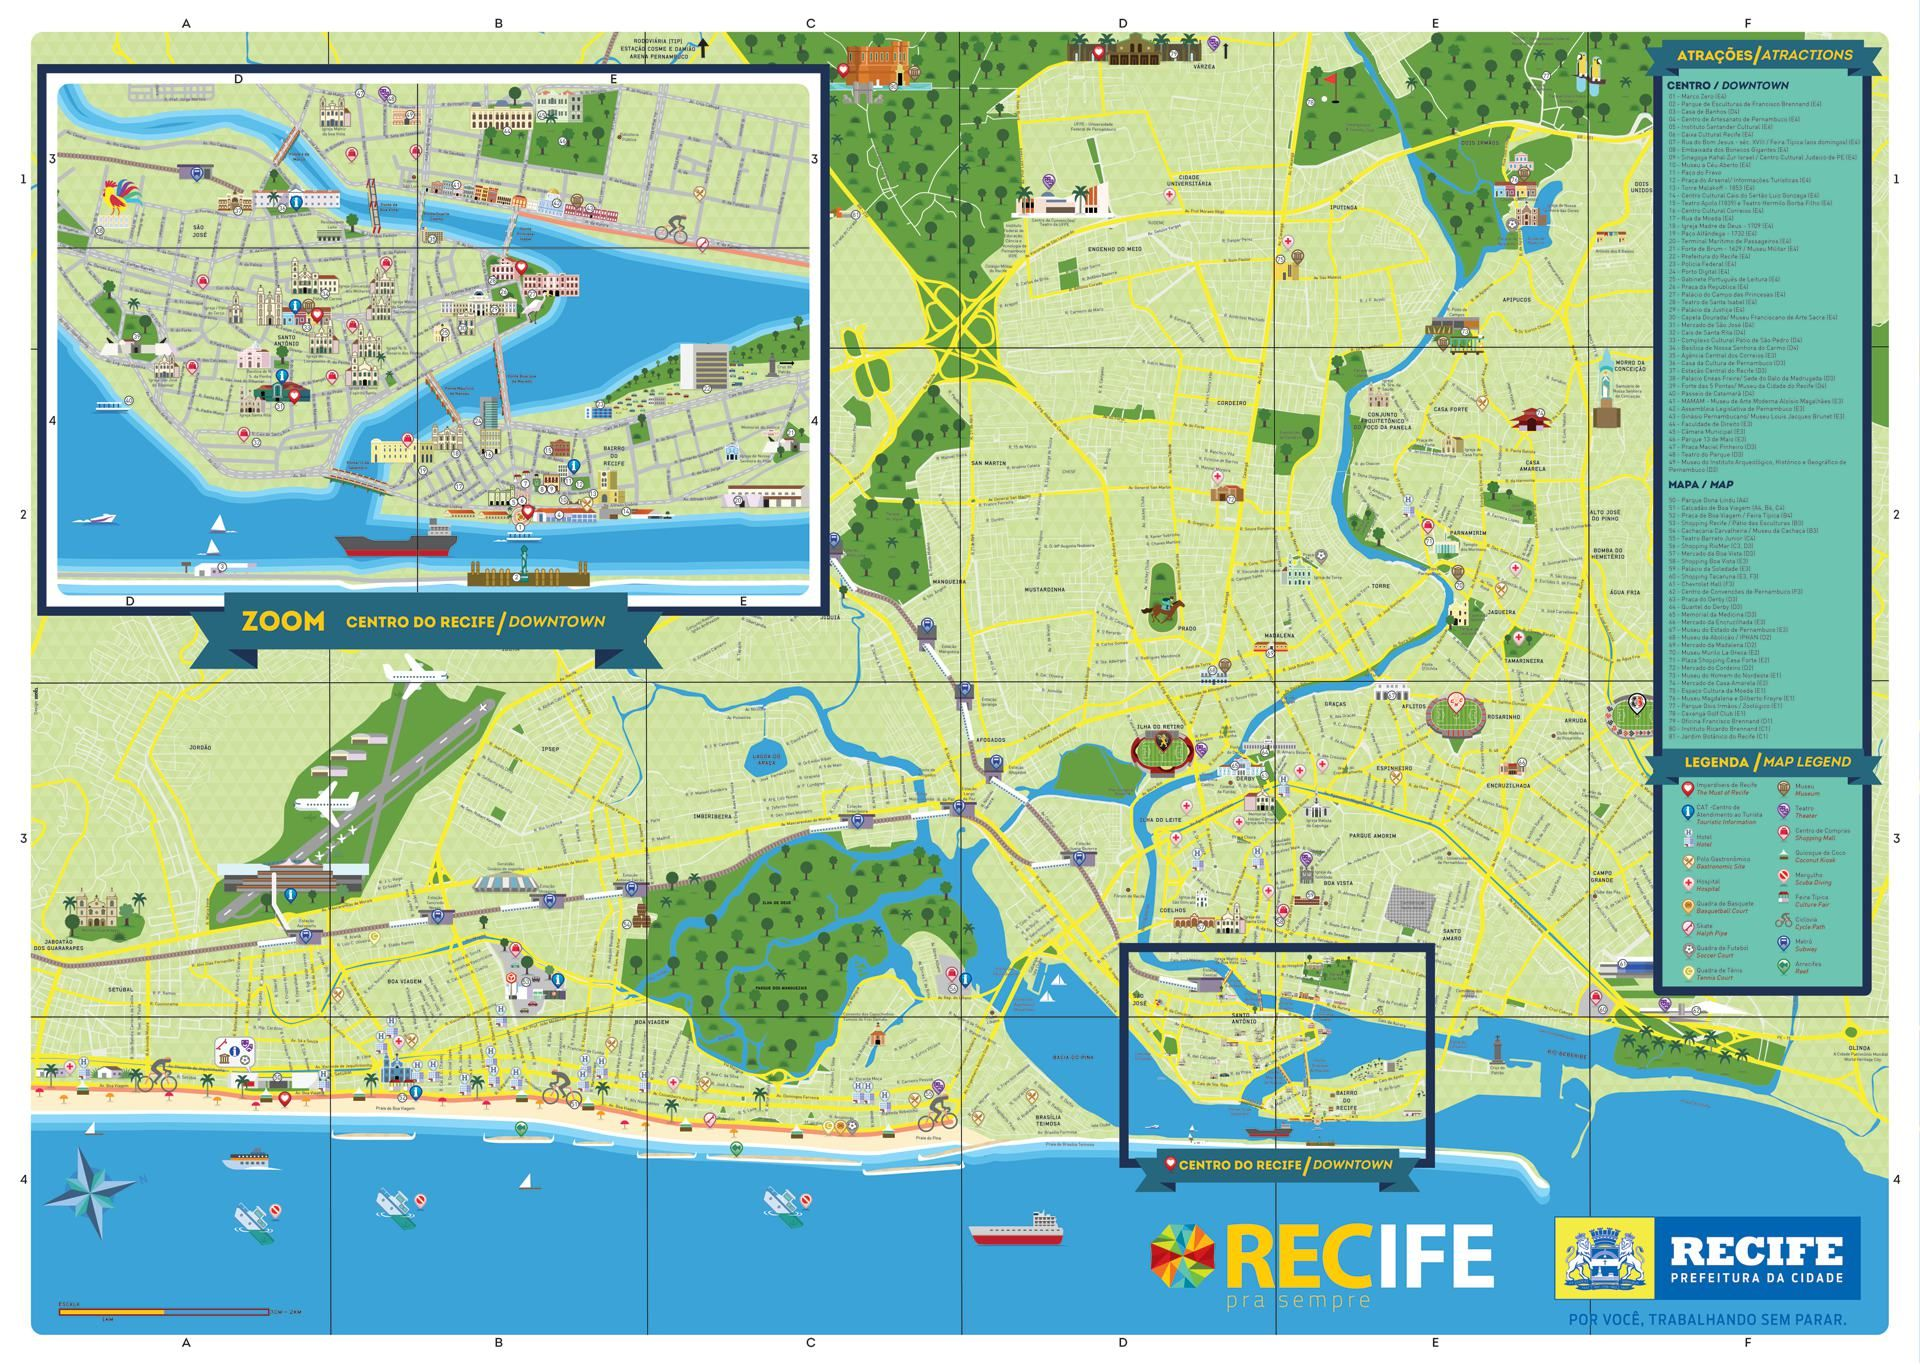 Mapa do Recife Map Design marcussoartbr marcussoartbr Maps